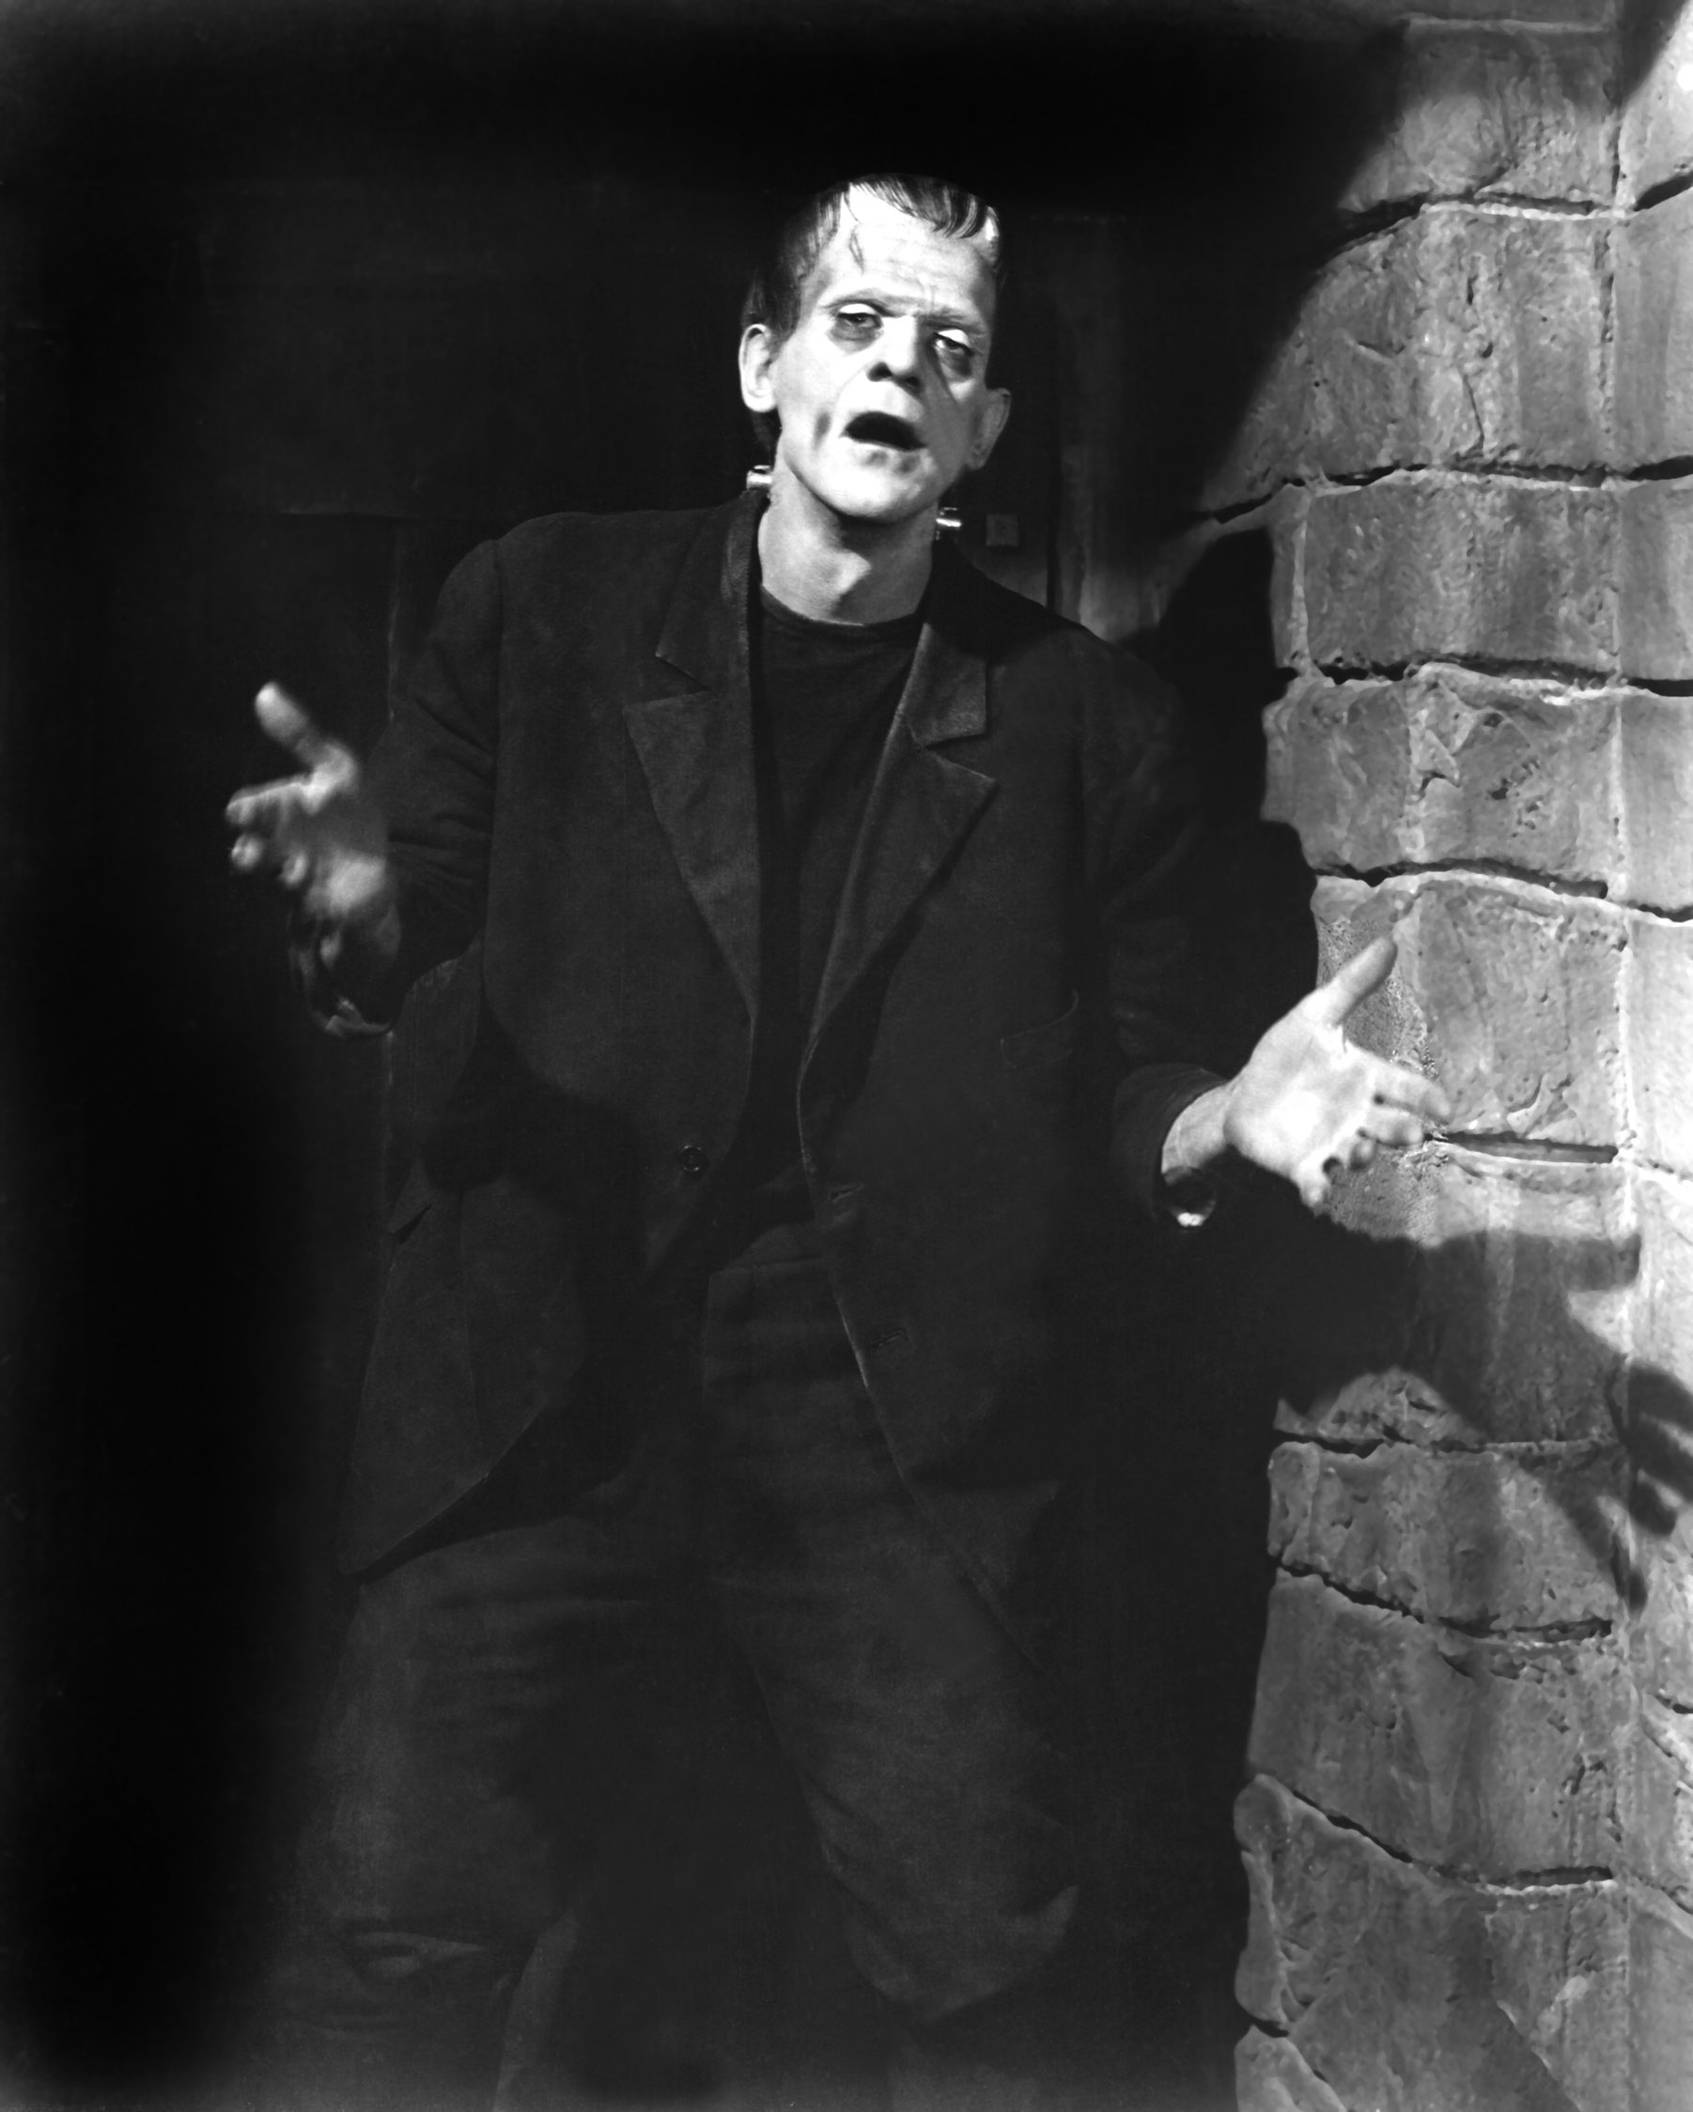 frankentein essay Frankenstein, by mary shelley, incorporates a great number of tragic hero's traits which are the ground of good essay topics despite this fact the novel draws a parallel to the basis of human nature the contradictions of the plot create a long-lived impression on the character of this kind.